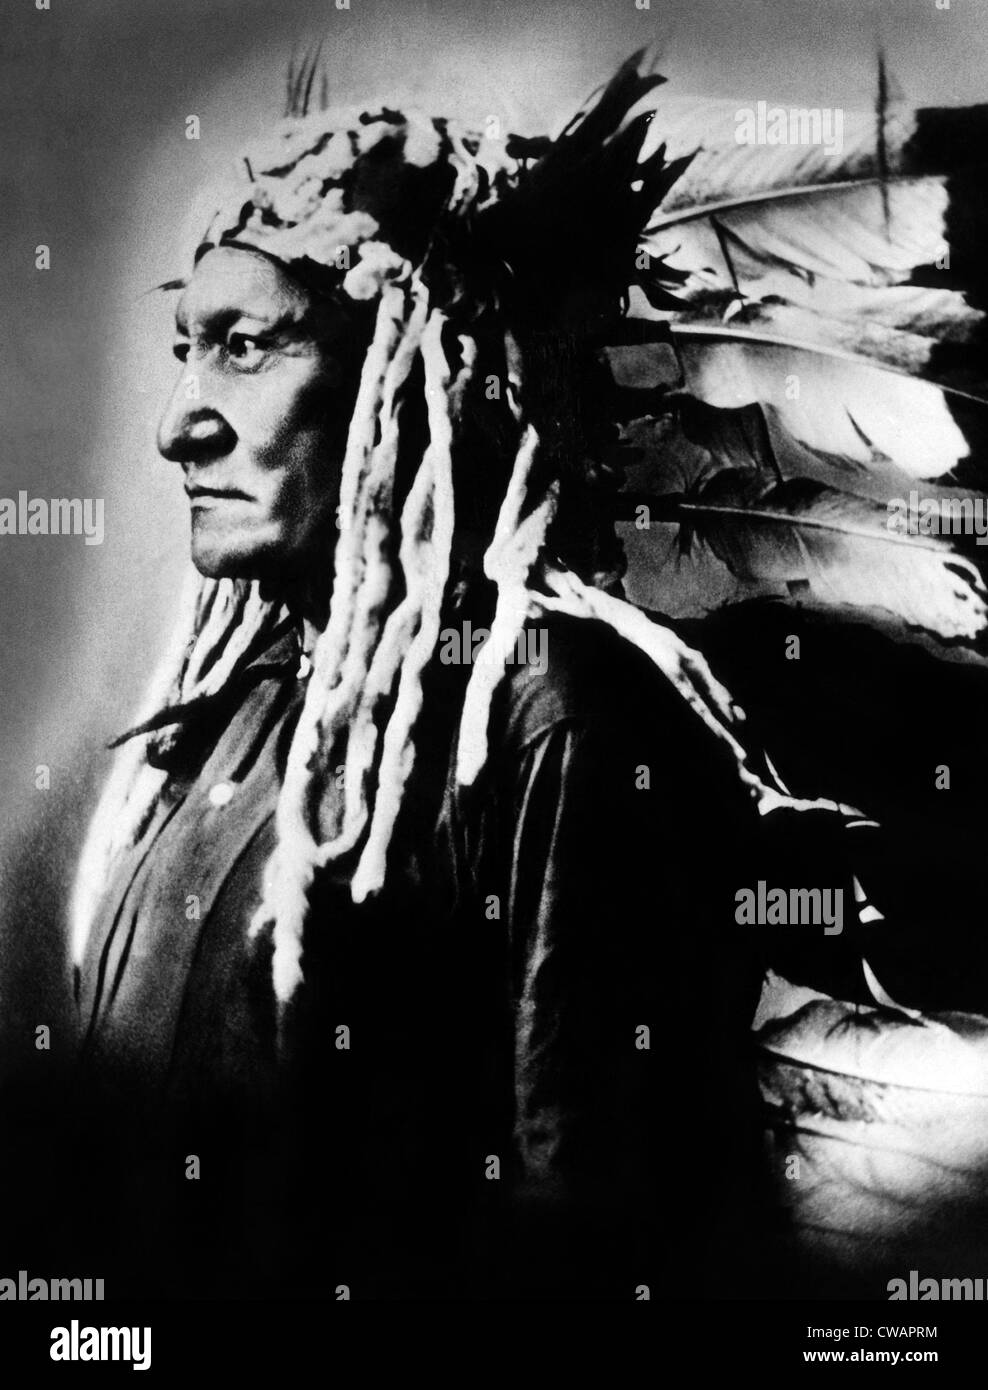 Native American Sioux chief Sitting Bull, (c. 1831-1890), best known for his victory at Battle of Little Big Horn, - Stock Image